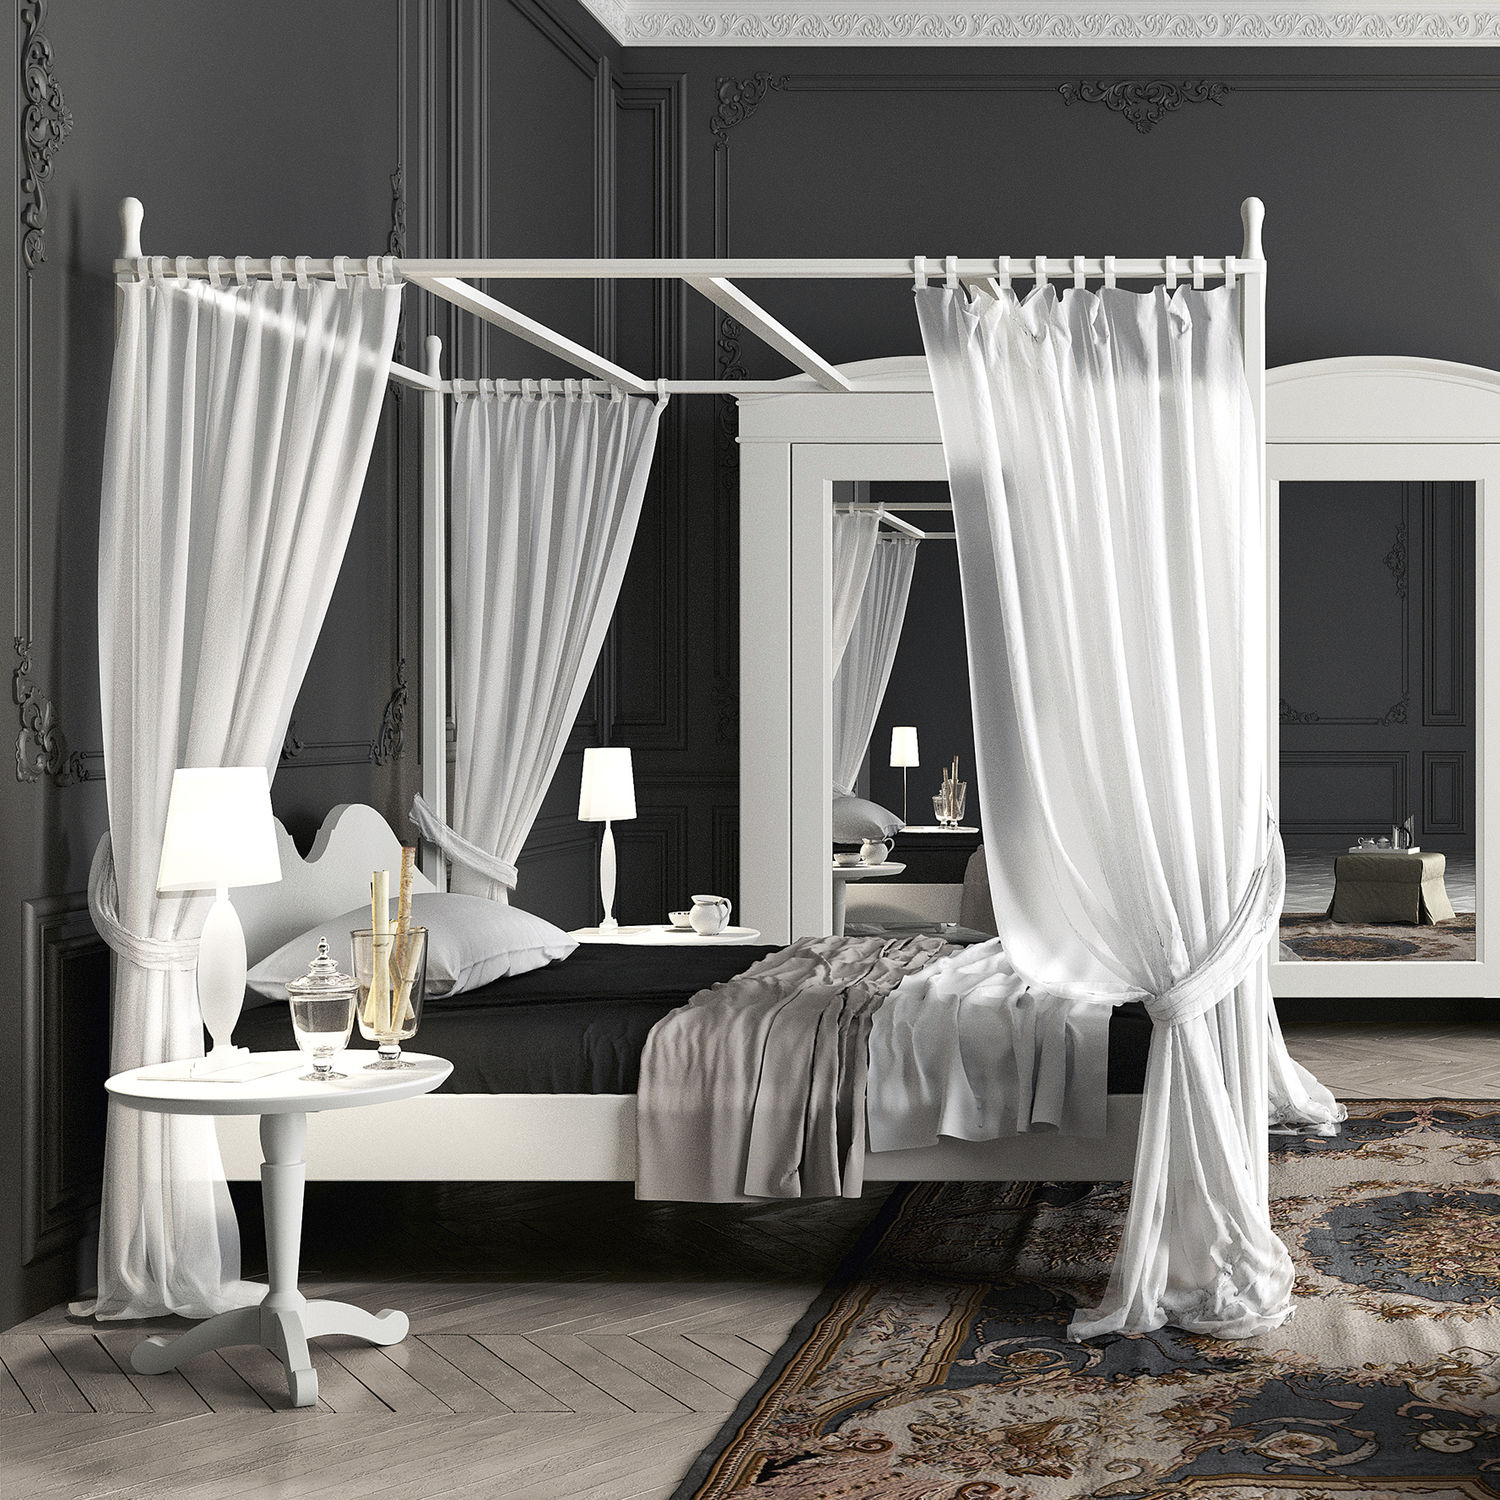 - Canopy Bed - 22 - Minacciolo - Double / Traditional / Wooden